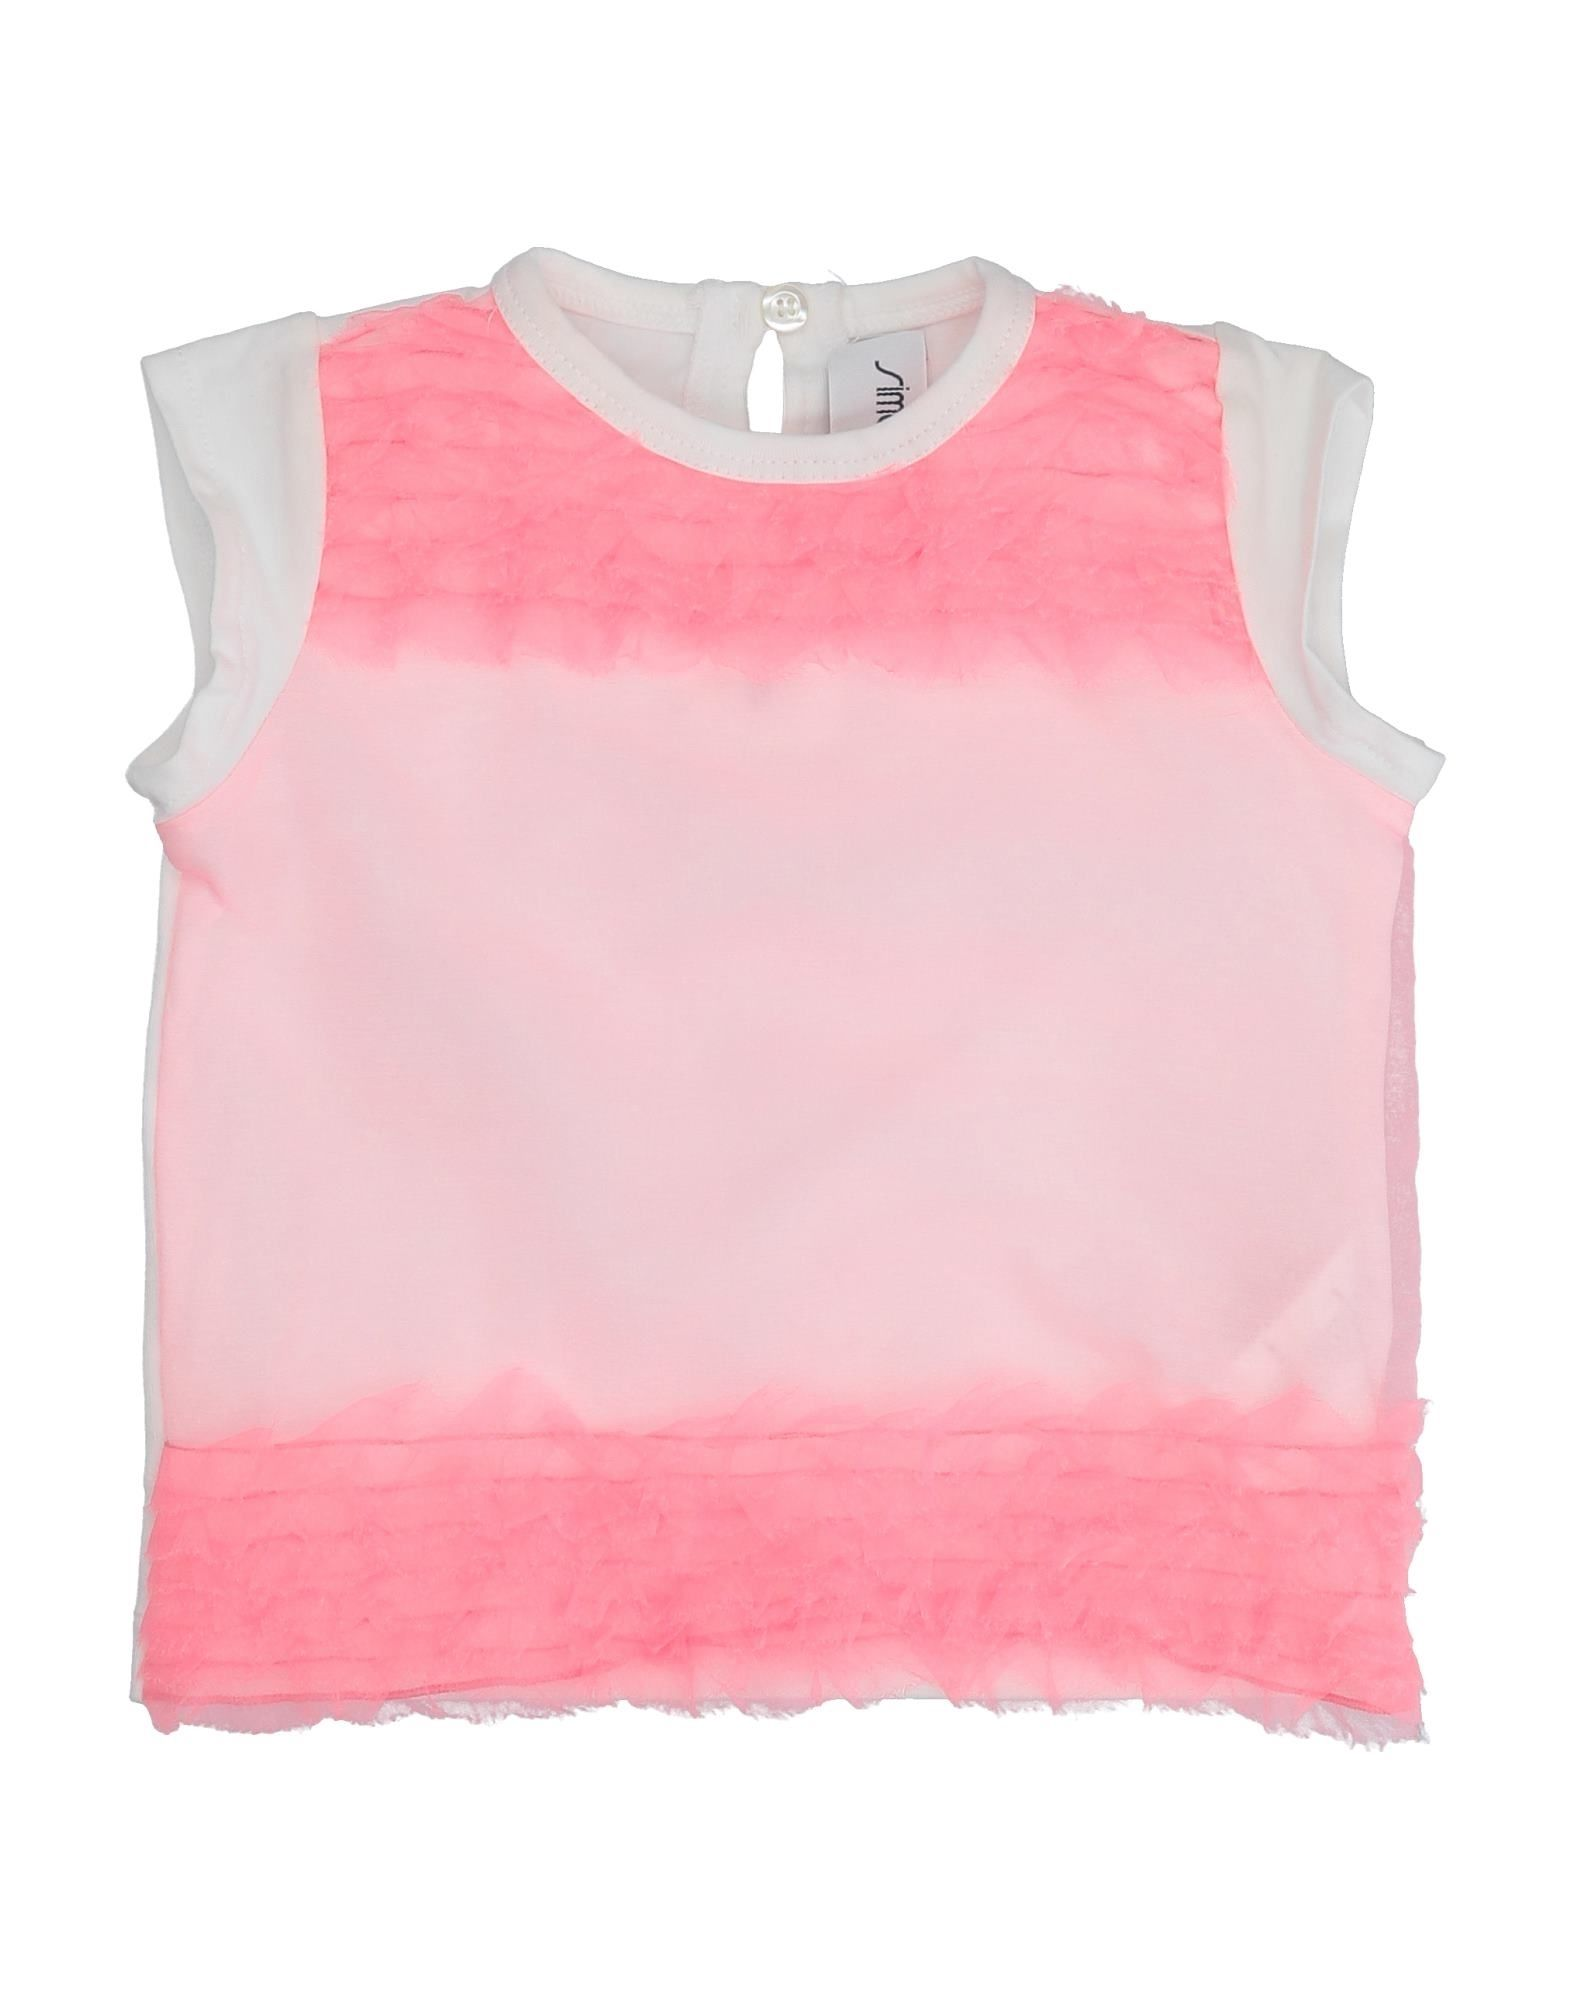 Simonetta Mini Kids' T-shirts In Pink